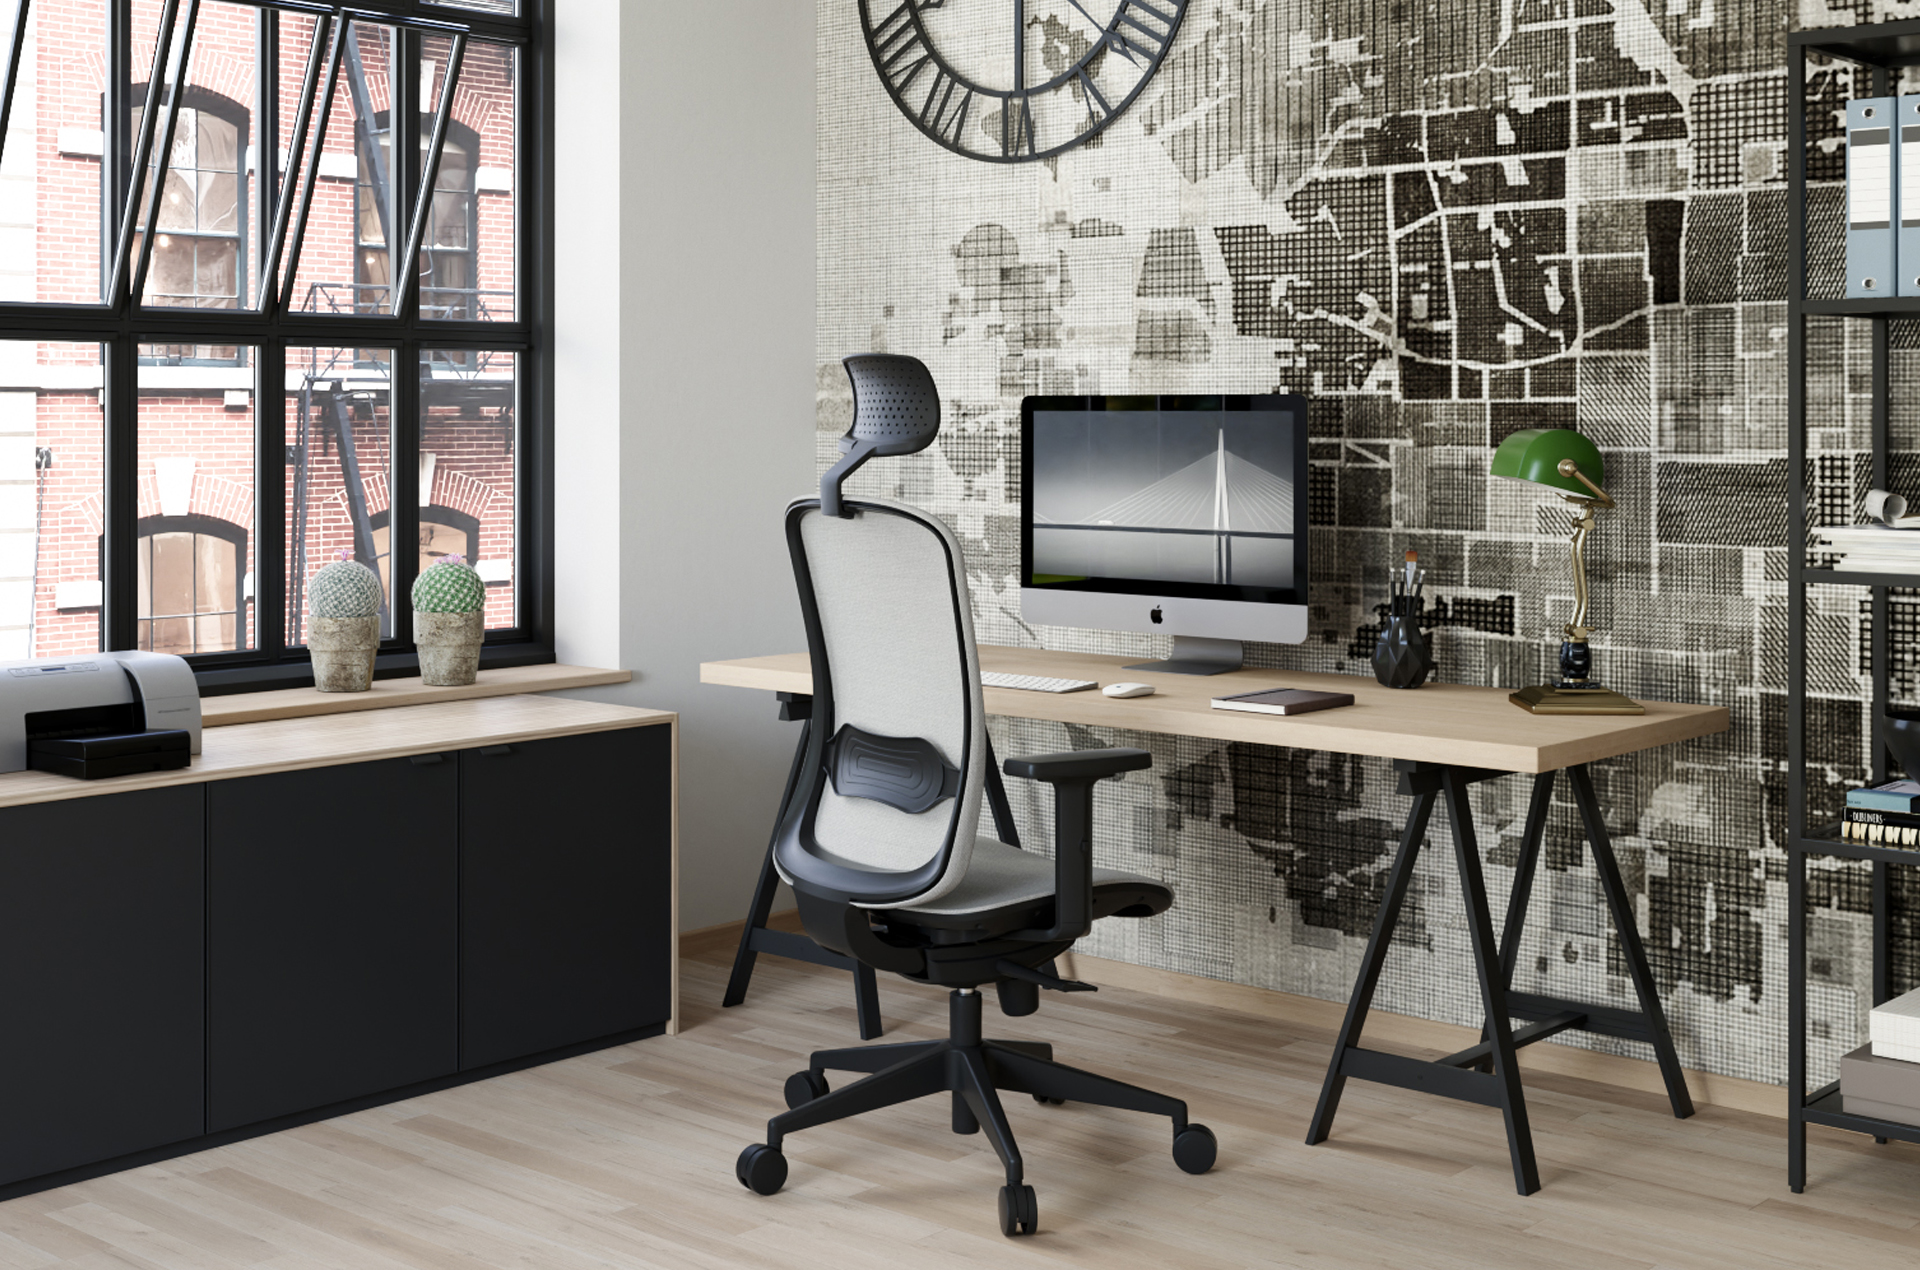 sshape-the-ideal-backrest-for-a-broad-range-of-office-and-home-needs